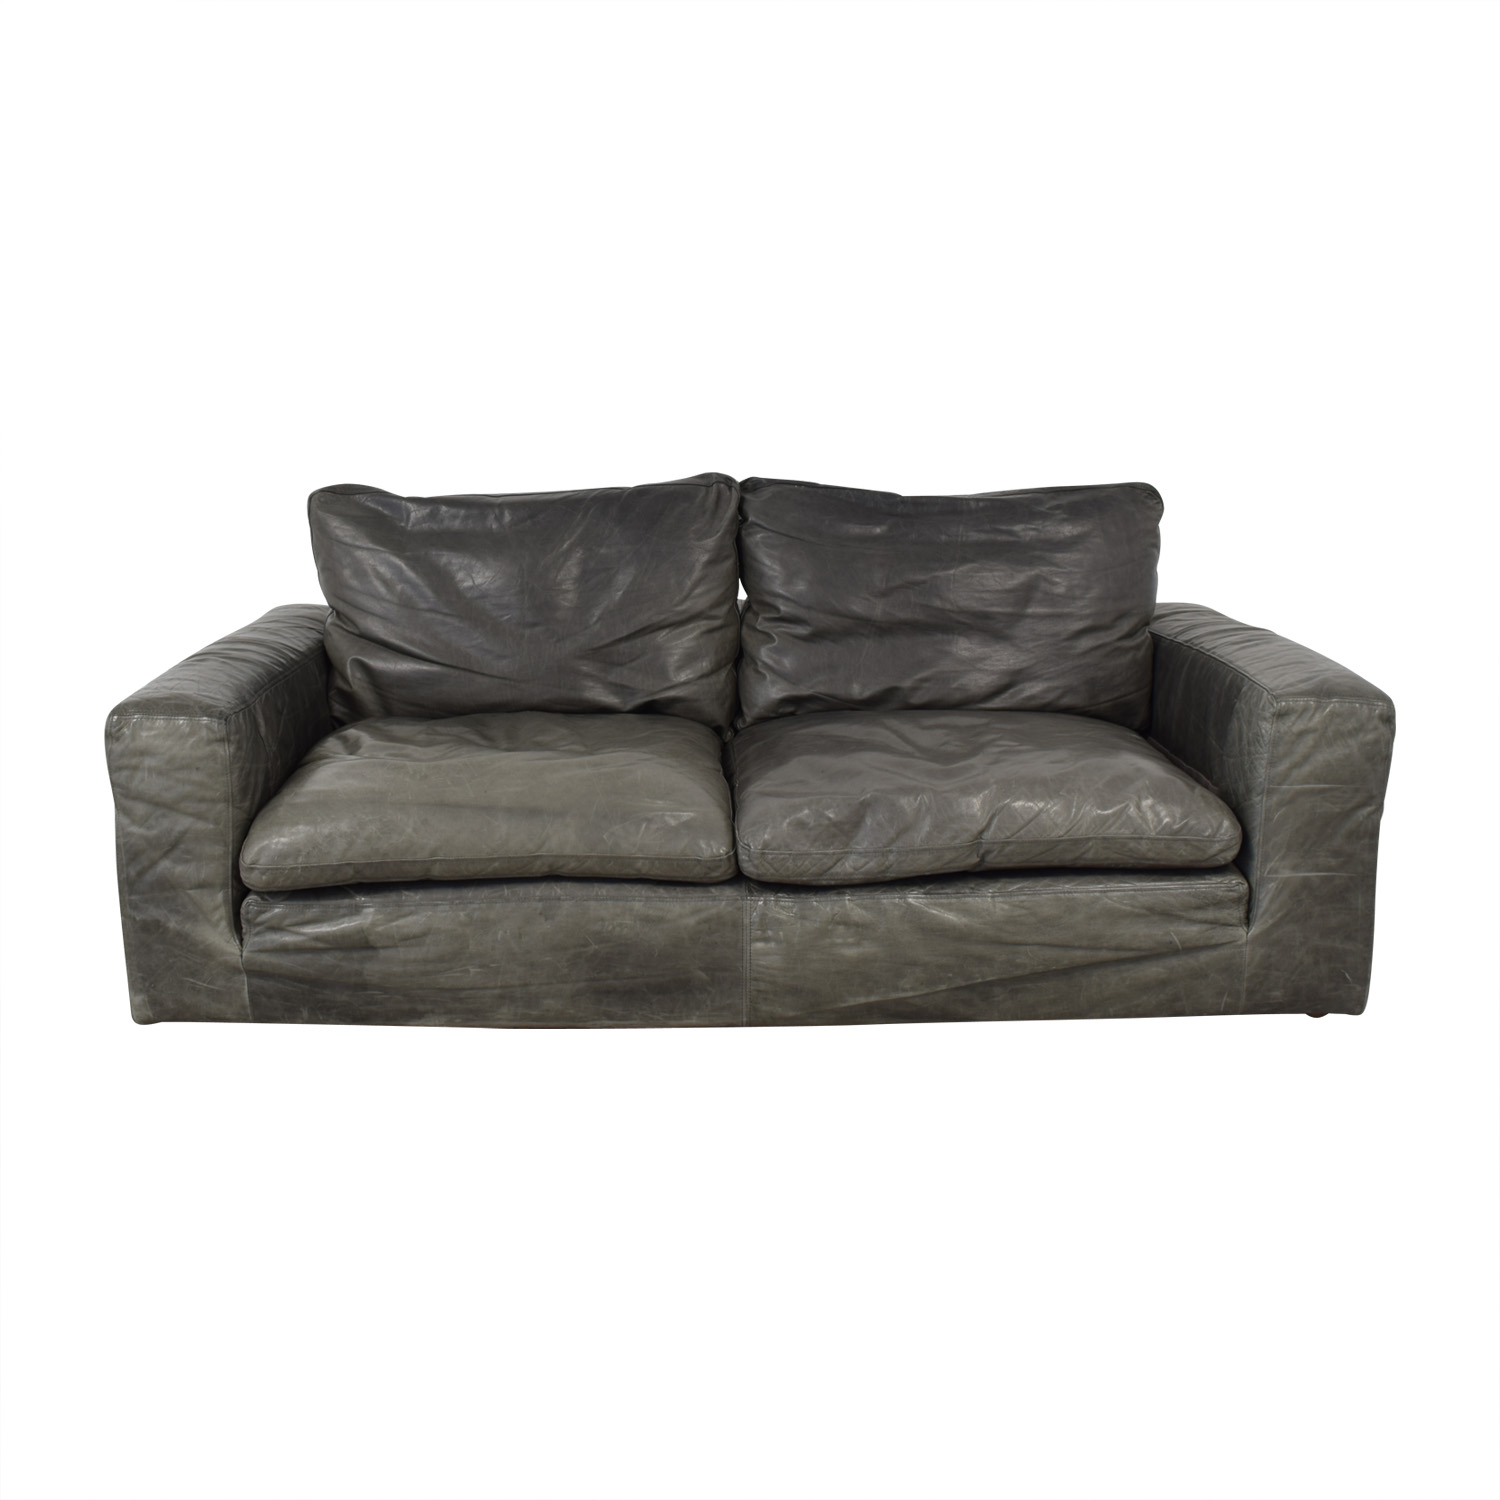 Restoration Hardware Restoration Hardware Cloud Leather Two-Seat-Cushion Sofa used